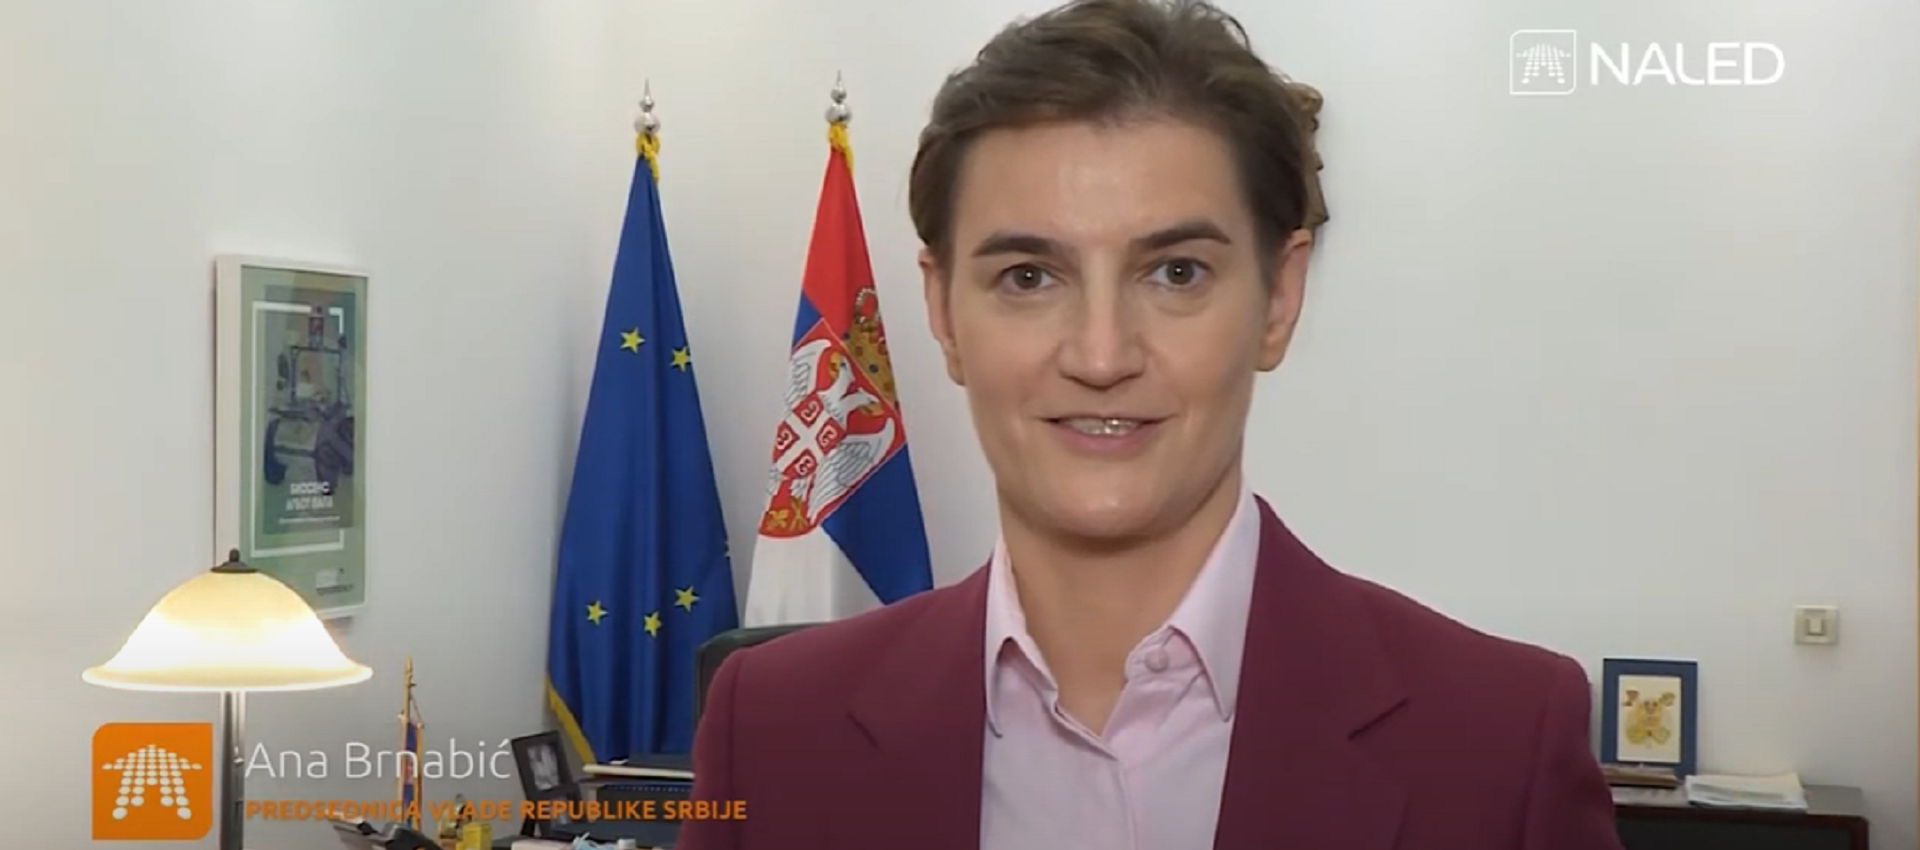 Ana Brnabić's address  at the 14th NALED Assembly